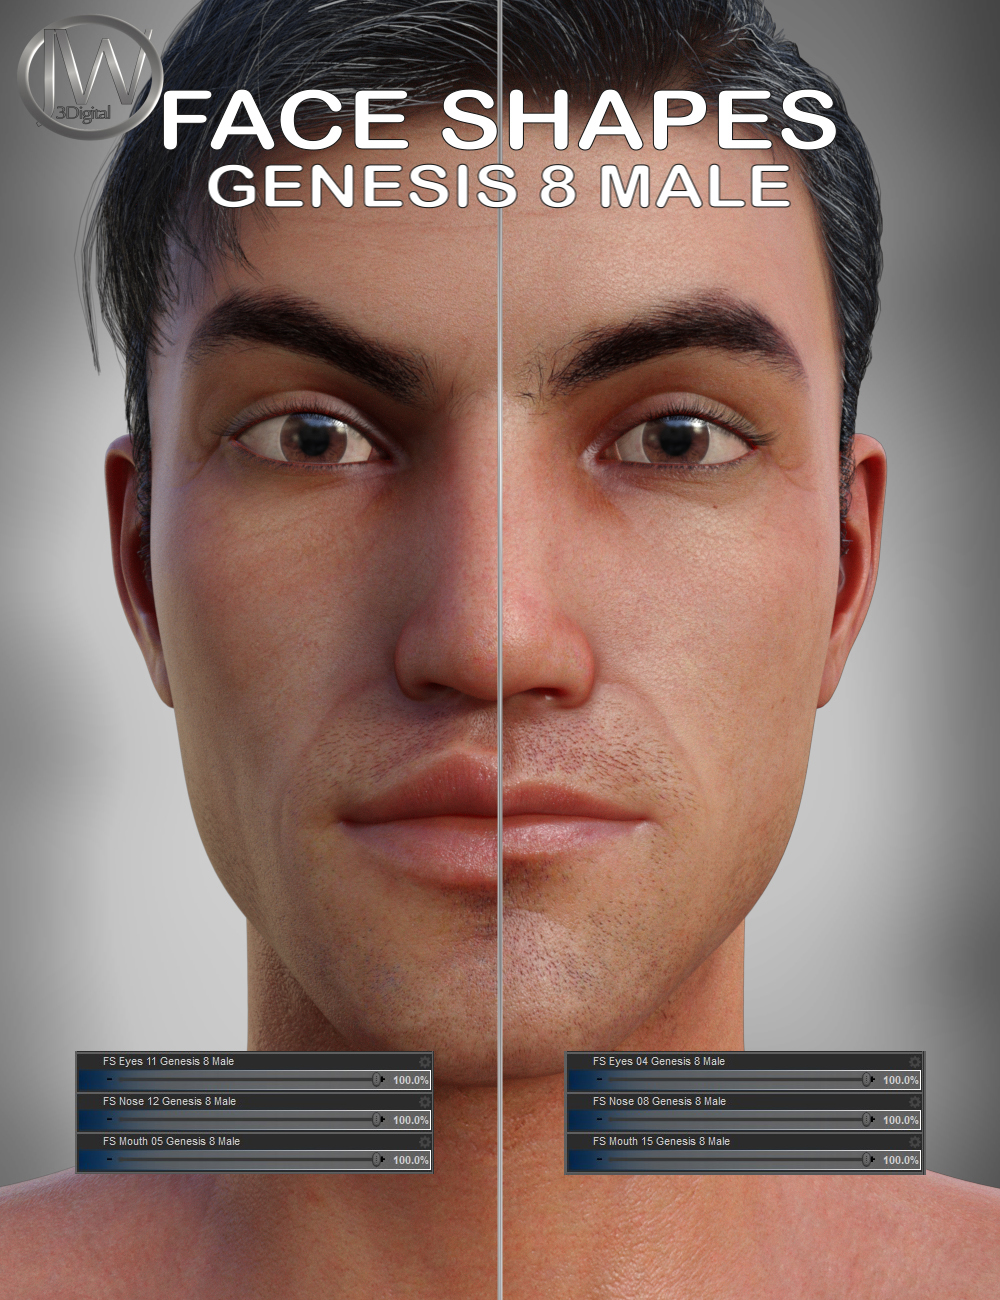 Face Shapes for Genesis 8 Male by: JWolf, 3D Models by Daz 3D